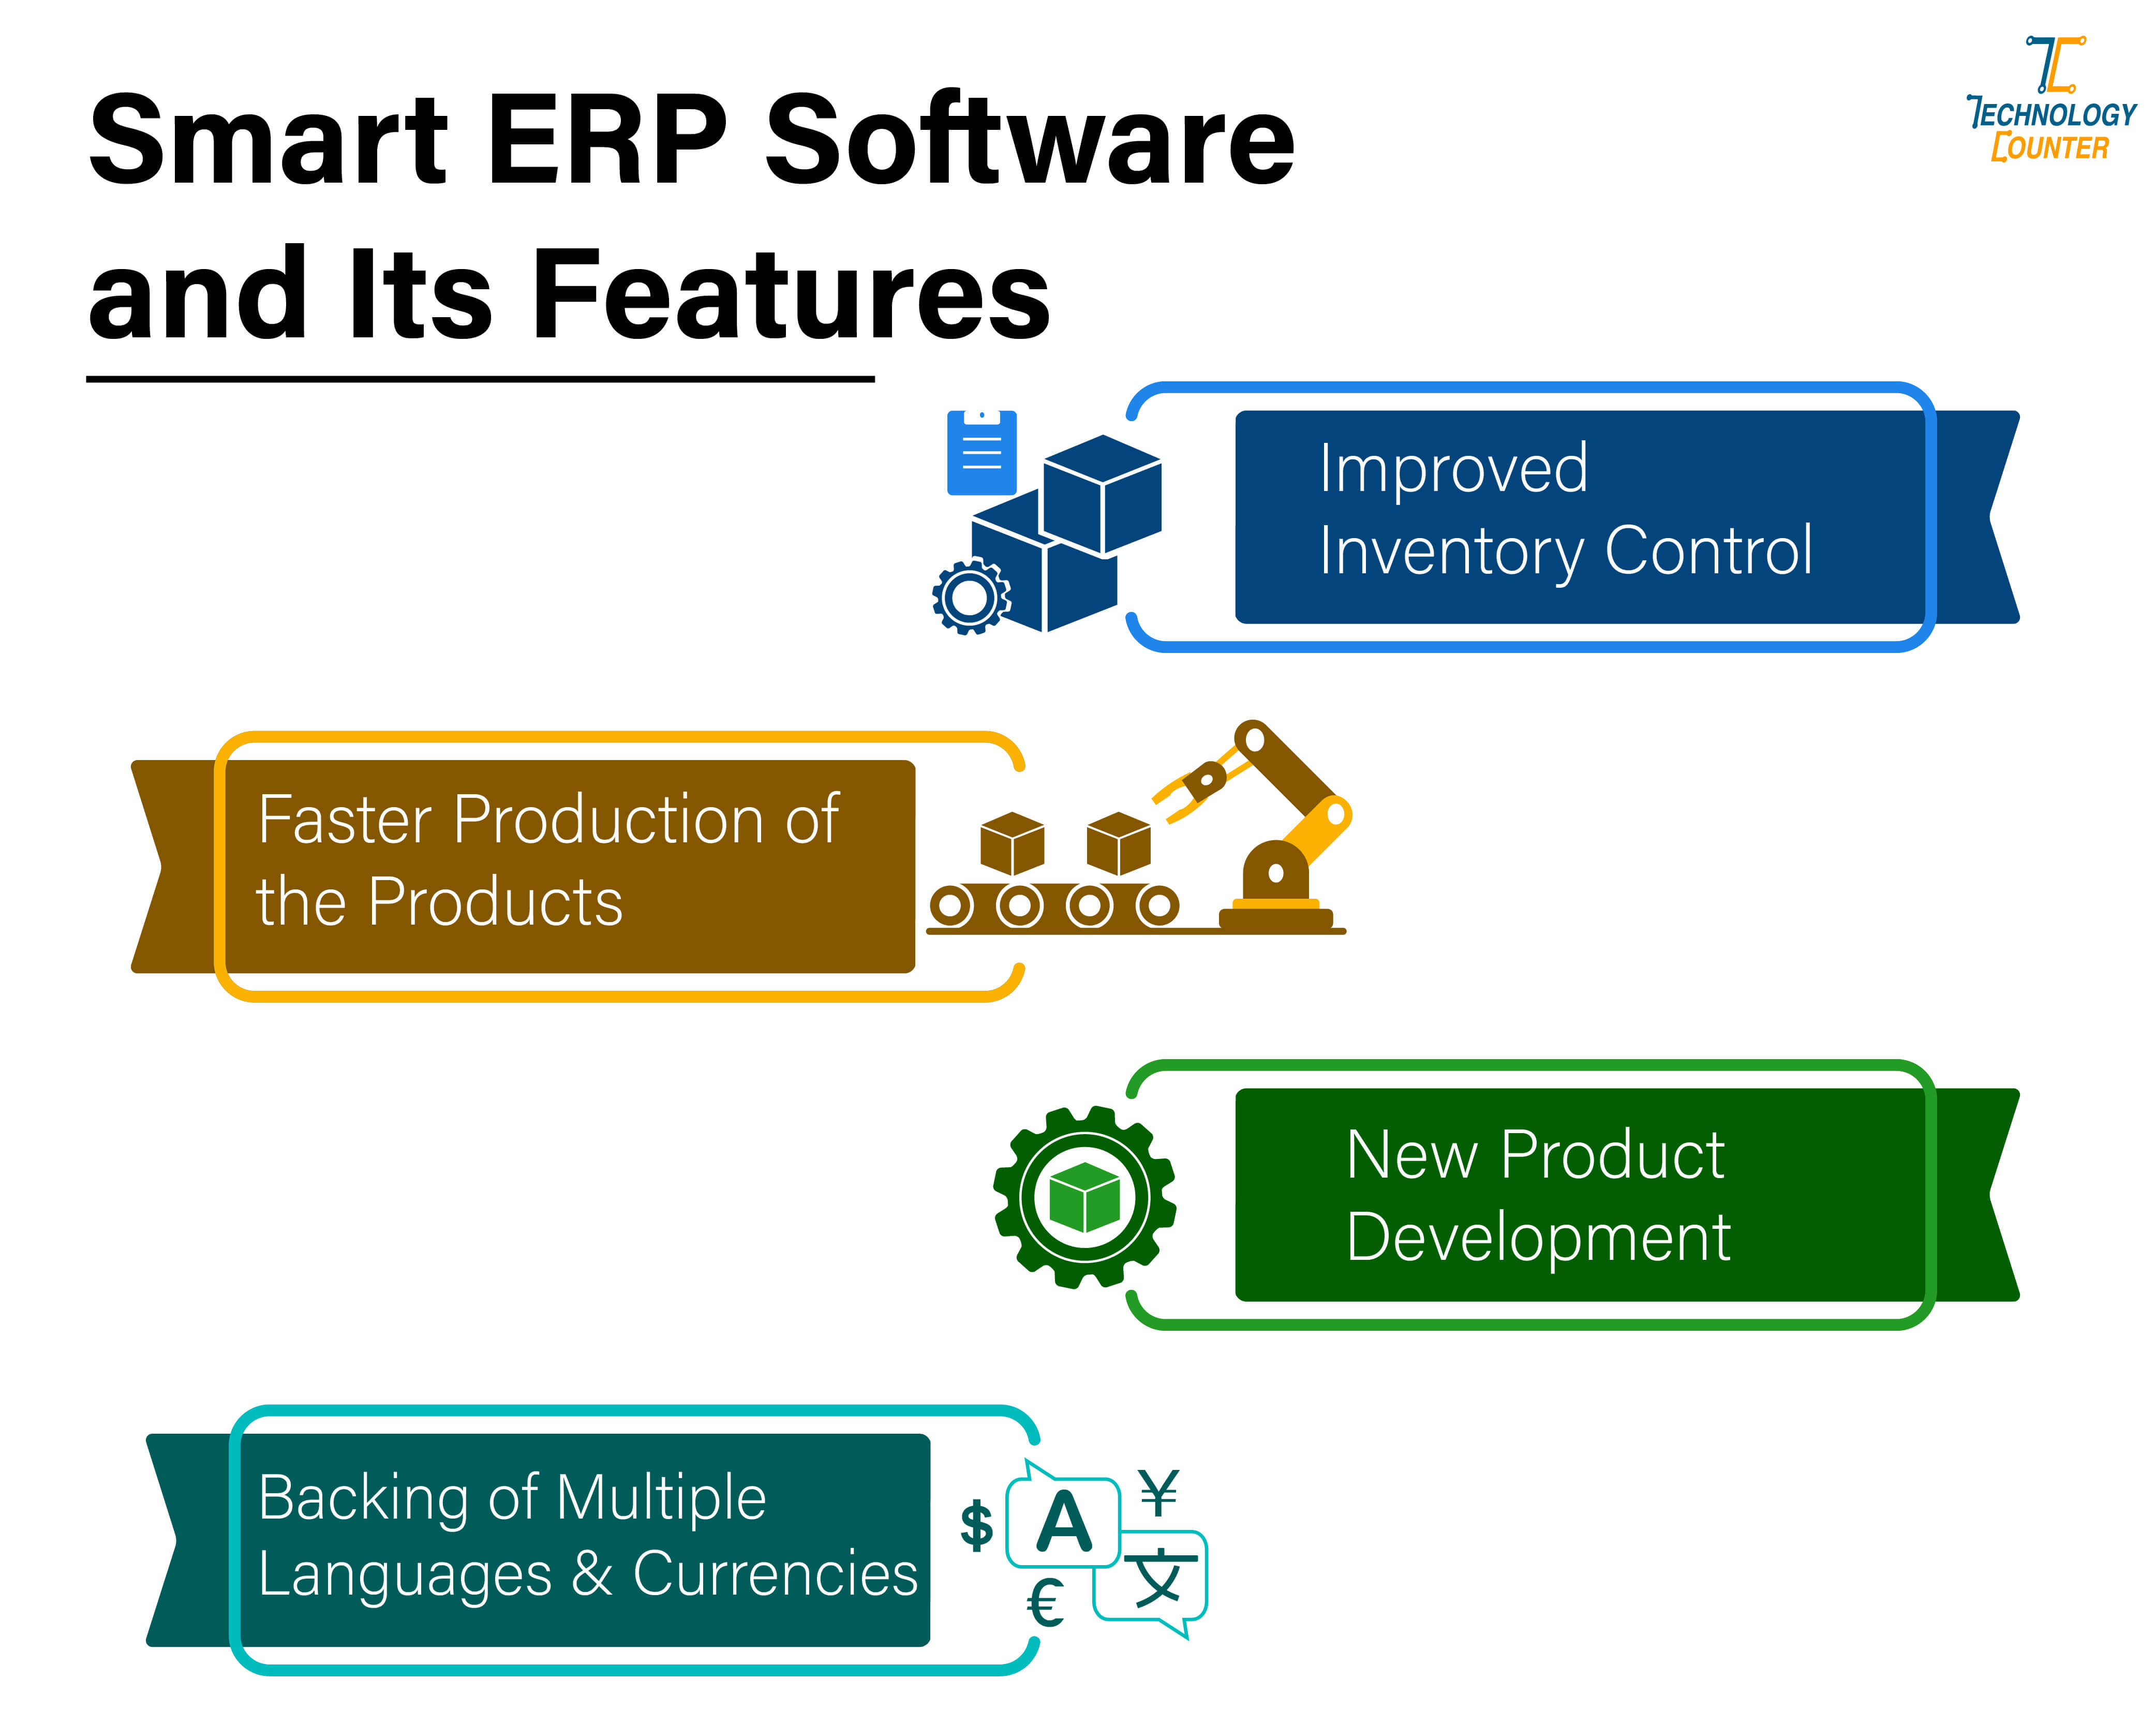 Growth Factors and Future of ERP Software in the Global Market